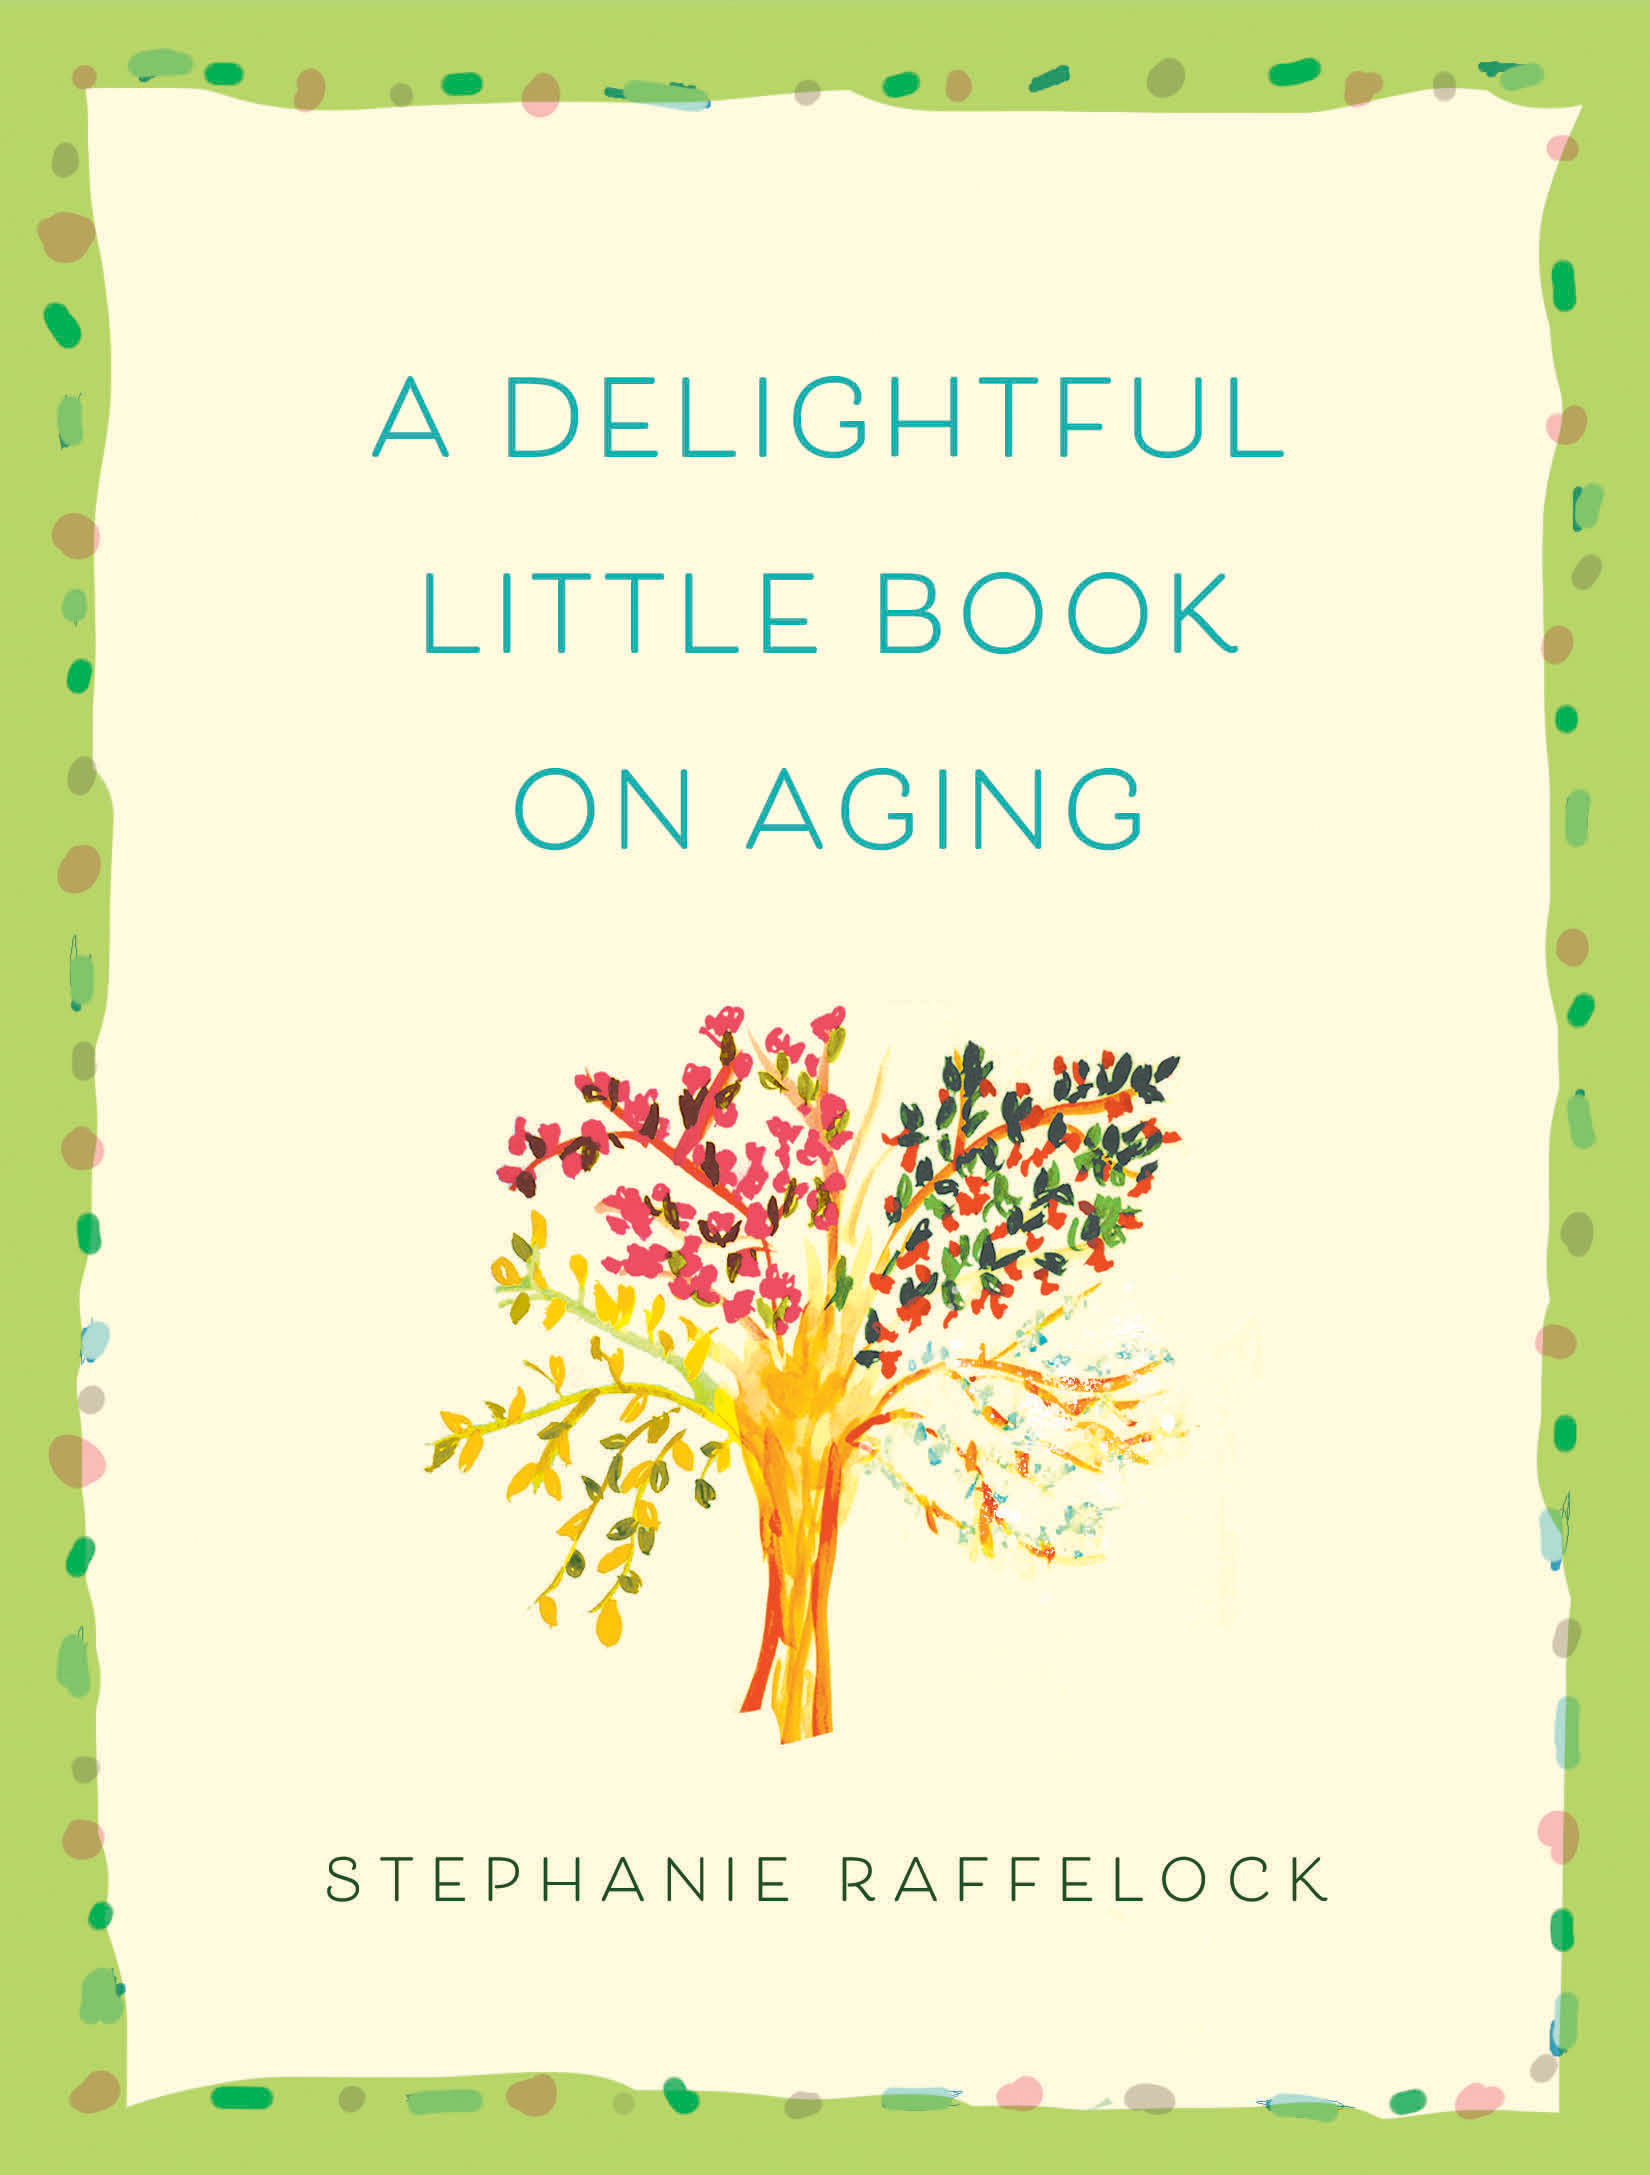 A Delightful Little Book On Aging